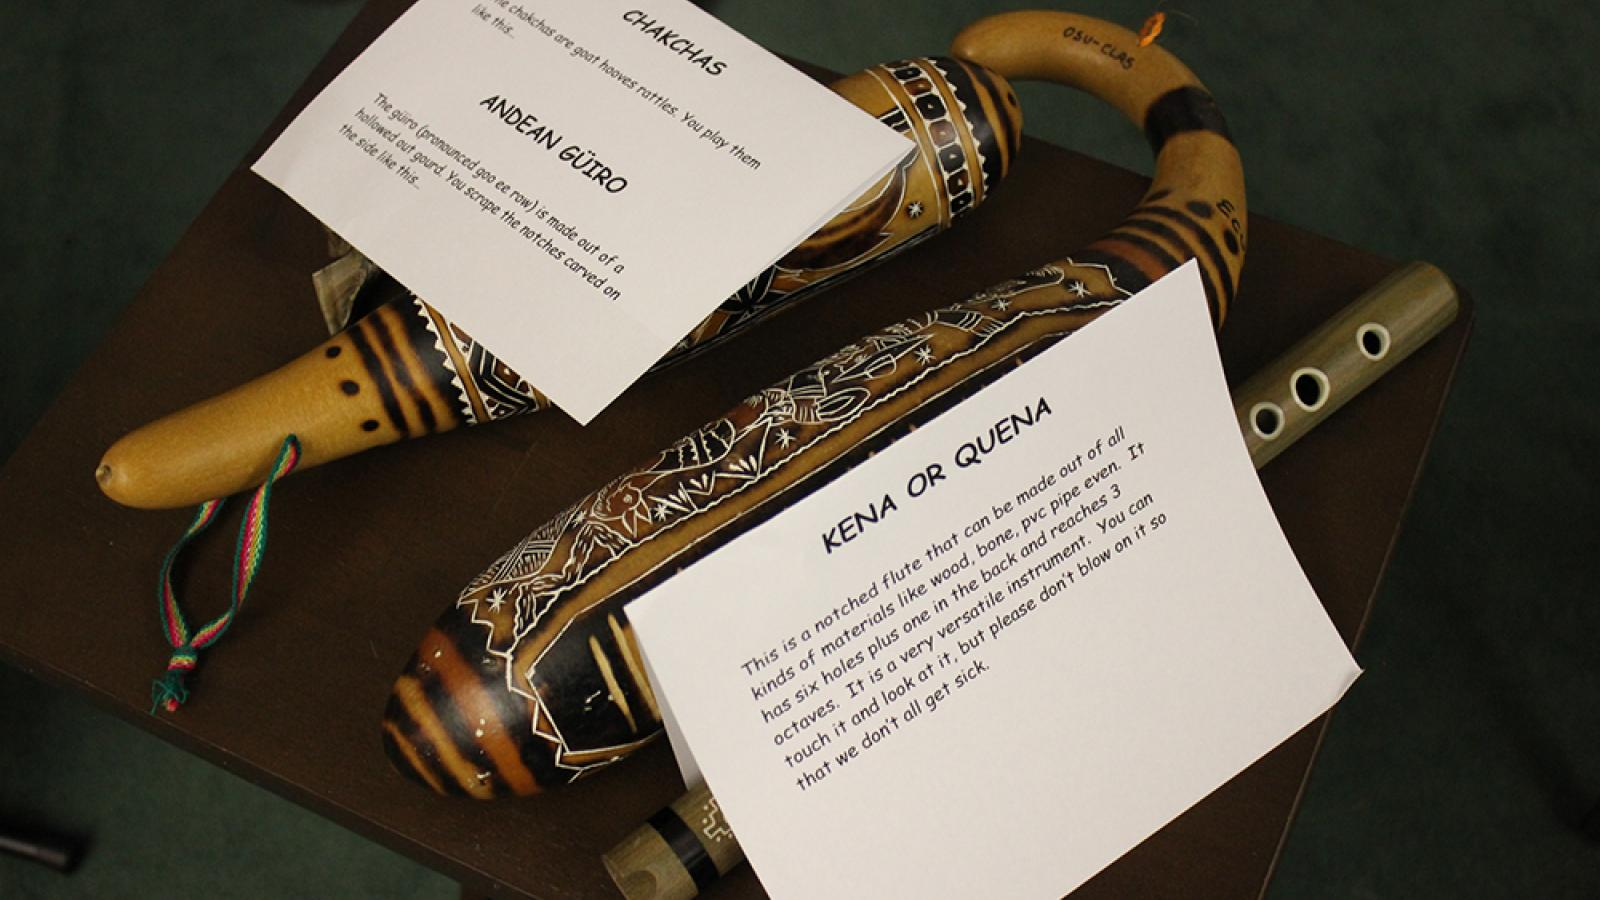 Instruments: Kena/Quena (notched mouthpiece flutes), Chakchas (goat hooves rattles)